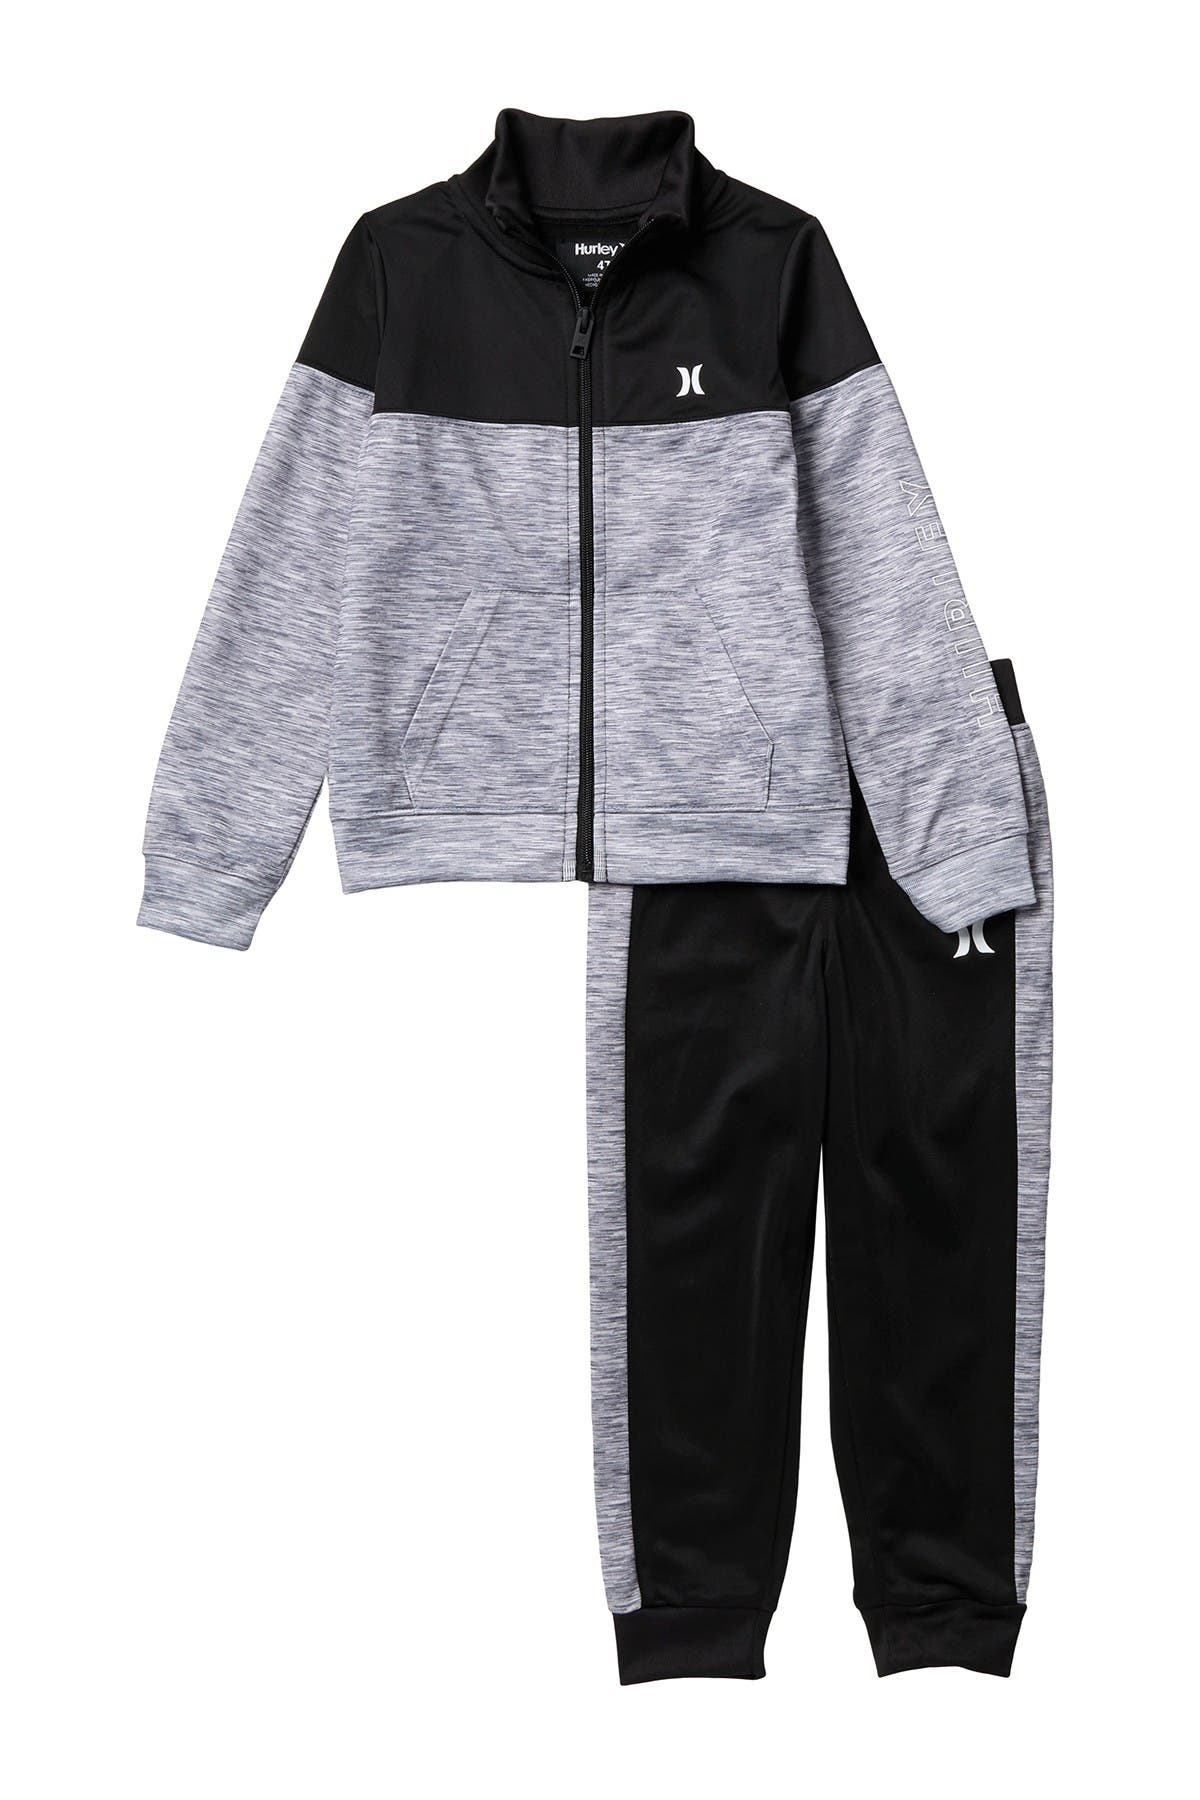 Hurley ONE & ONLY JACKET & PANTS SET